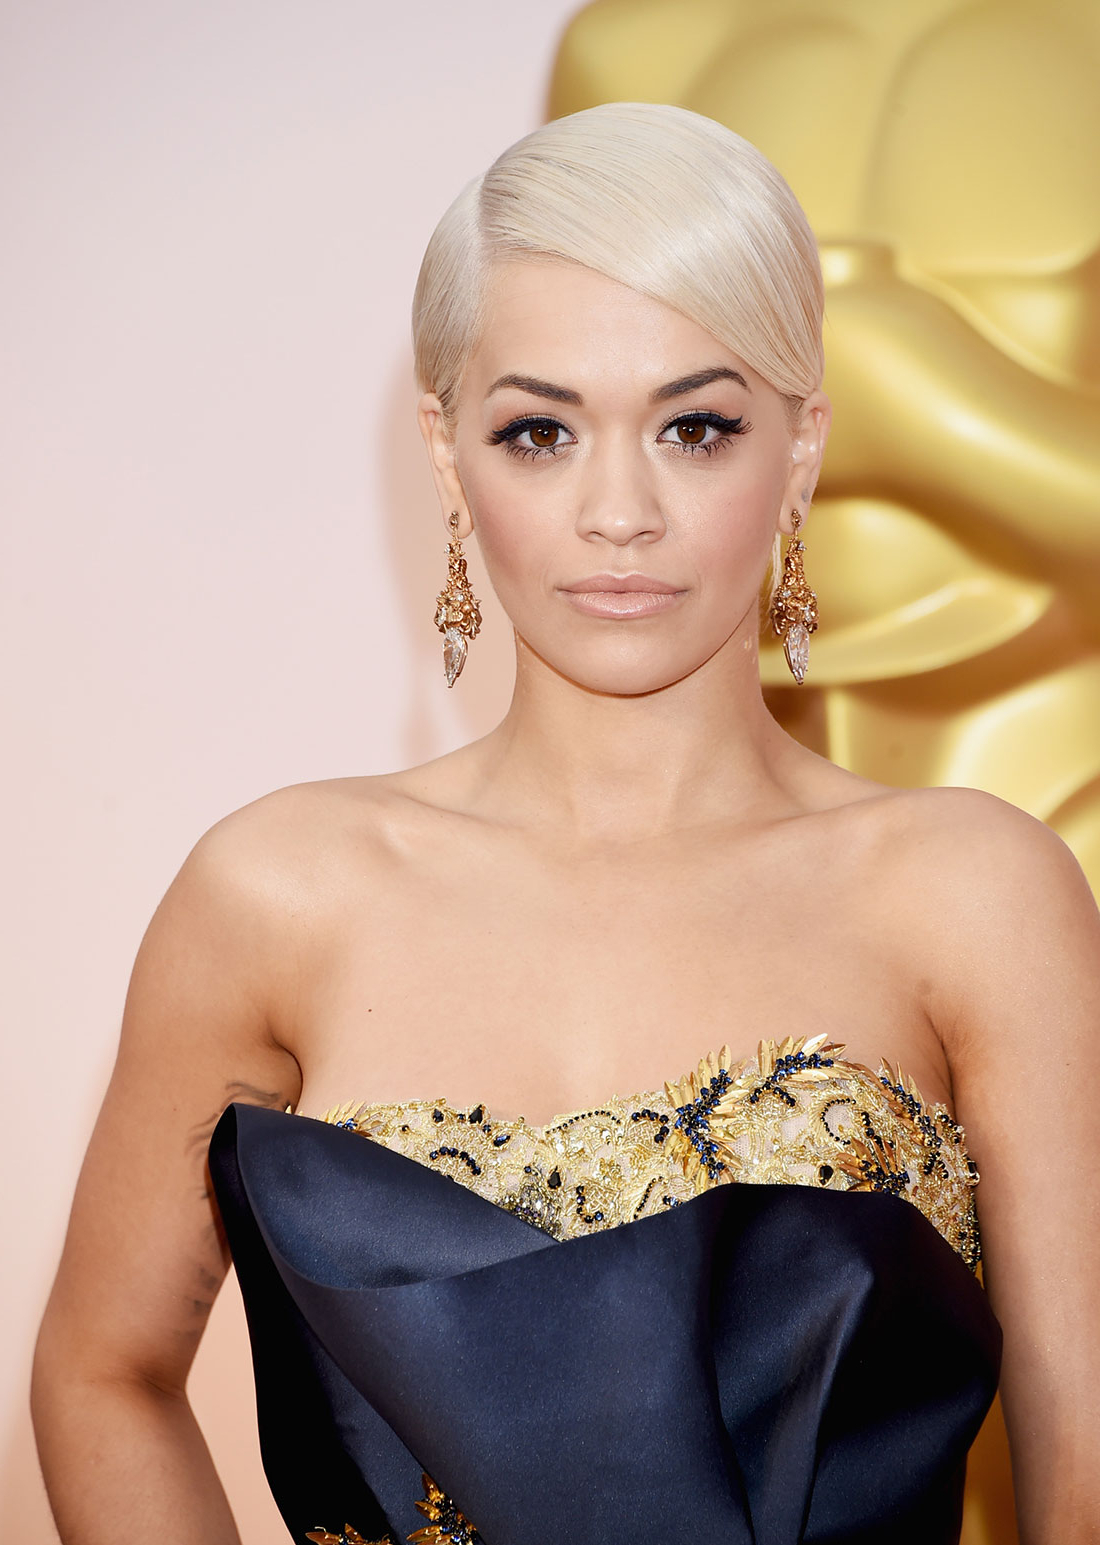 Rita Ora Short Hairstyles – Hairstyle For Women & Man In Preferred Rita Ora Medium Hairstyles (Gallery 13 of 20)